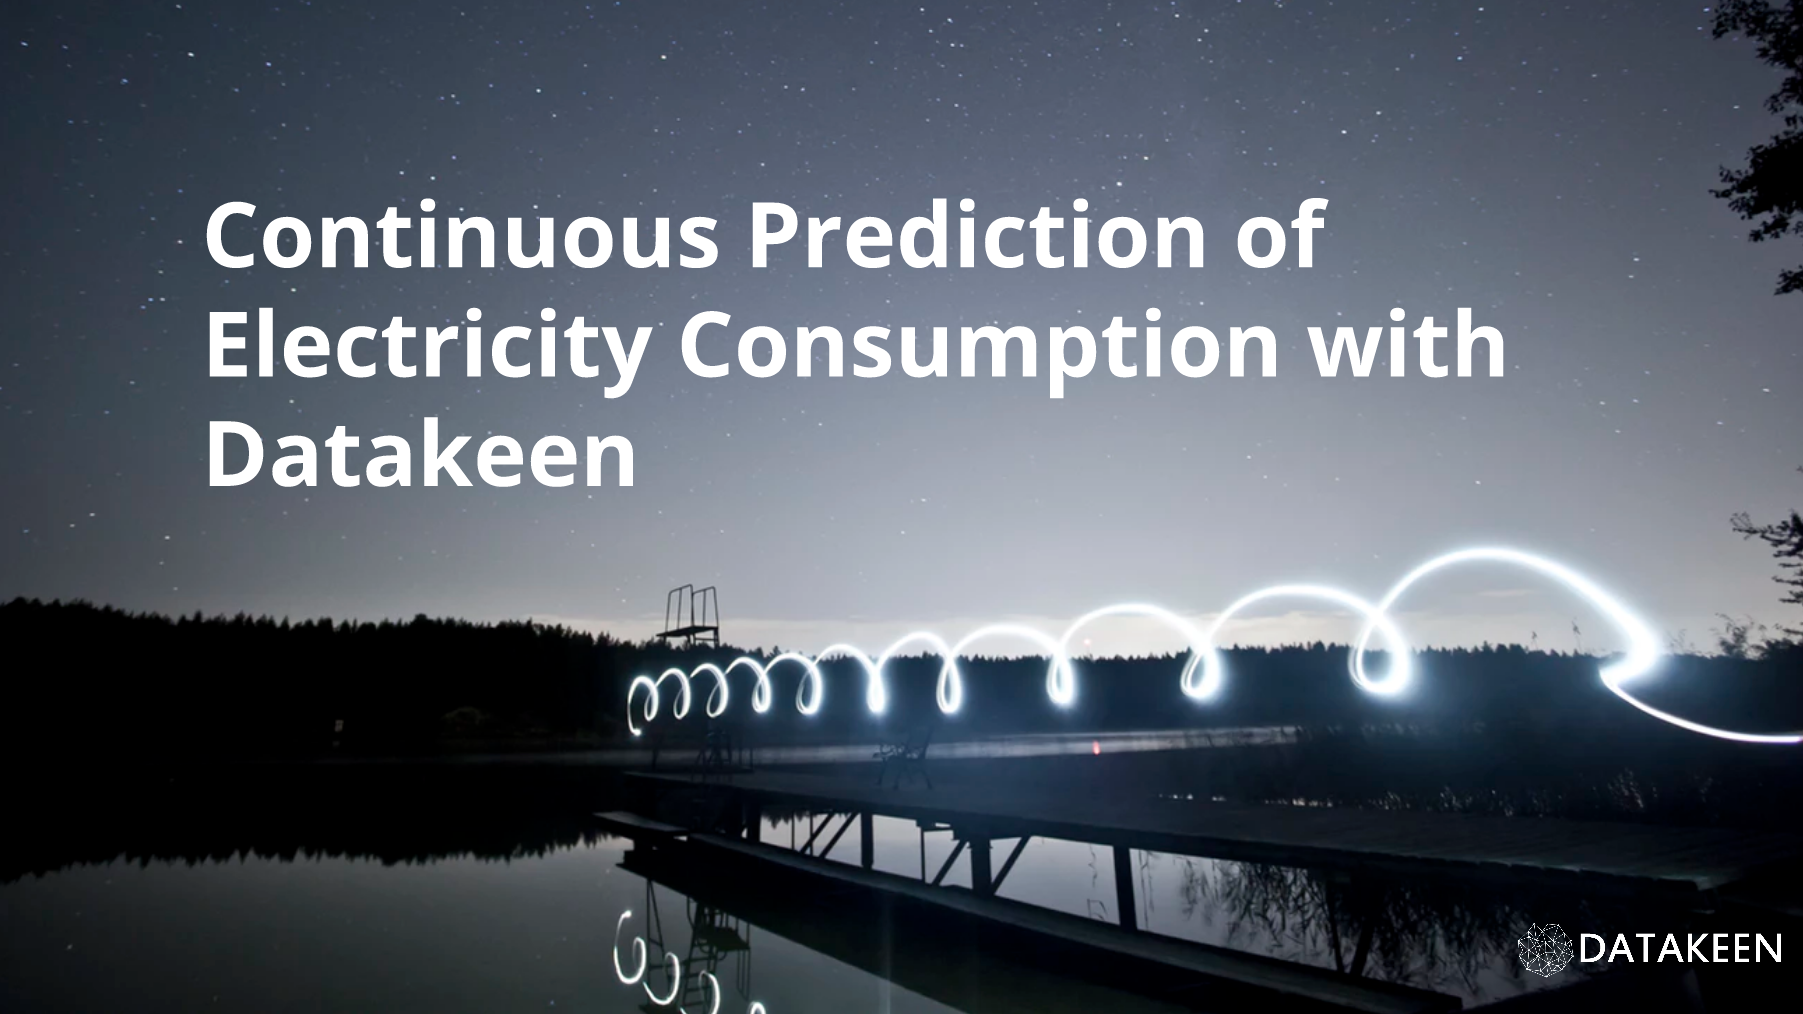 Datakeen predict power consumption